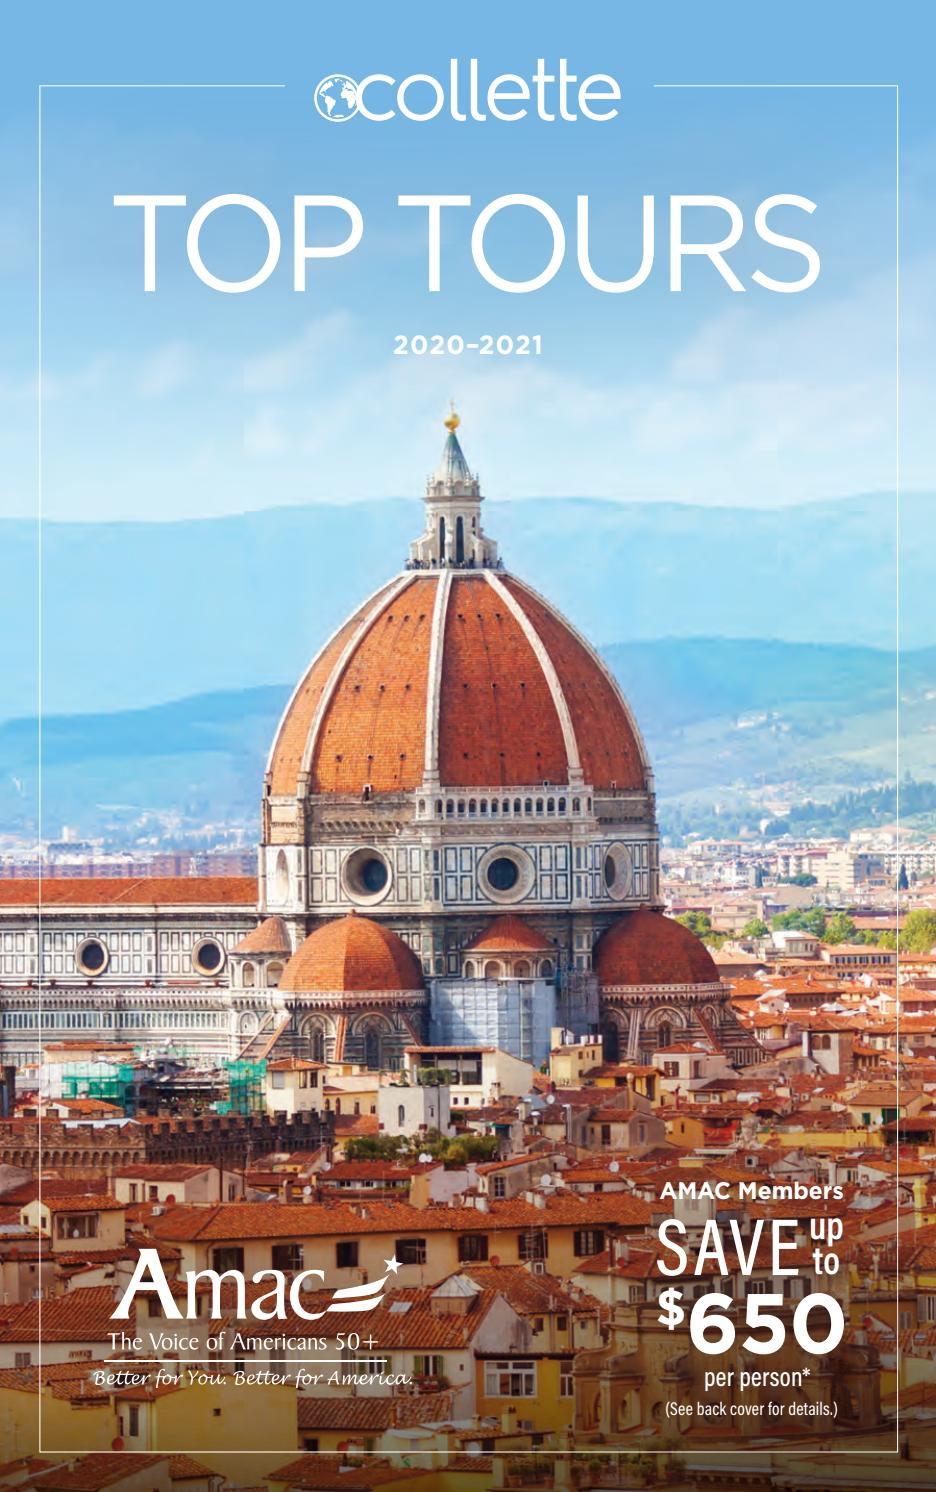 Dynamics Isola Della Scala 2020 2021 august top tours amac slim jim by collette - issuu